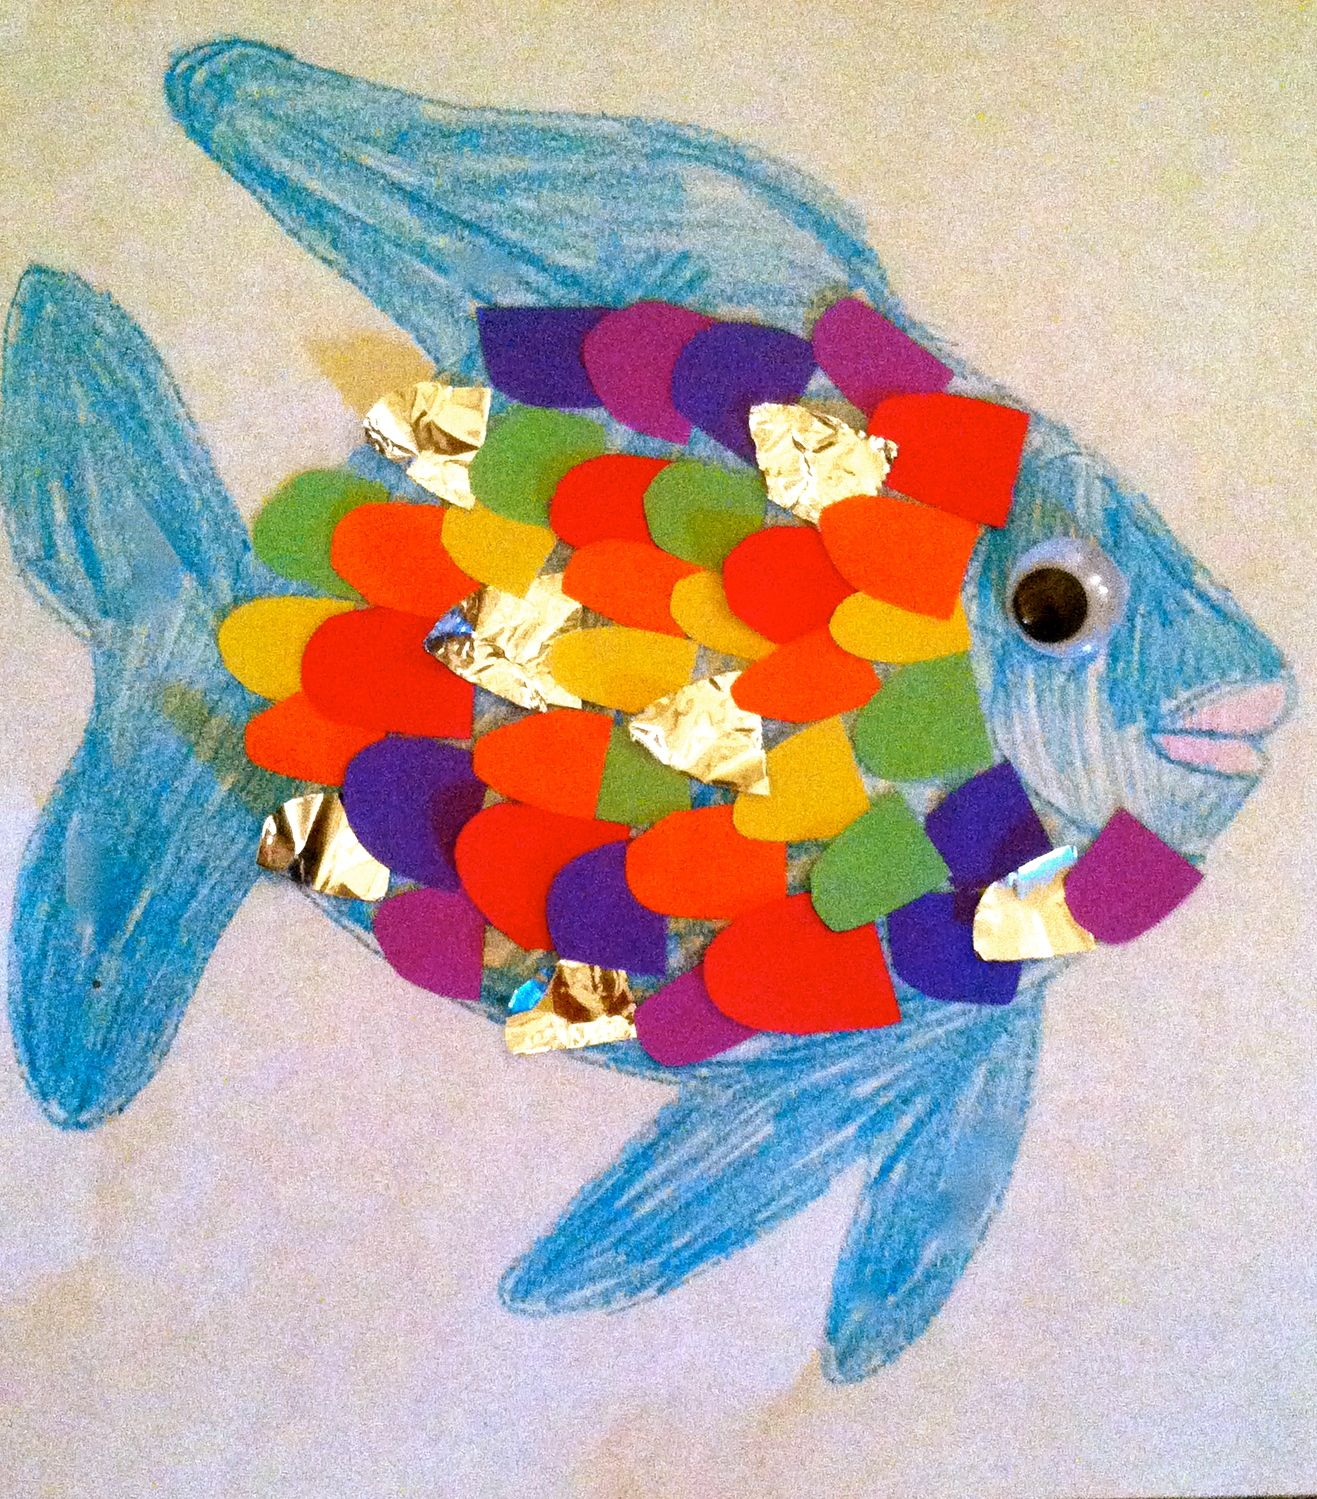 Order All Materials To Make This Rainbow Fish Plus A Copy Of The Book From Barnyard Book Club